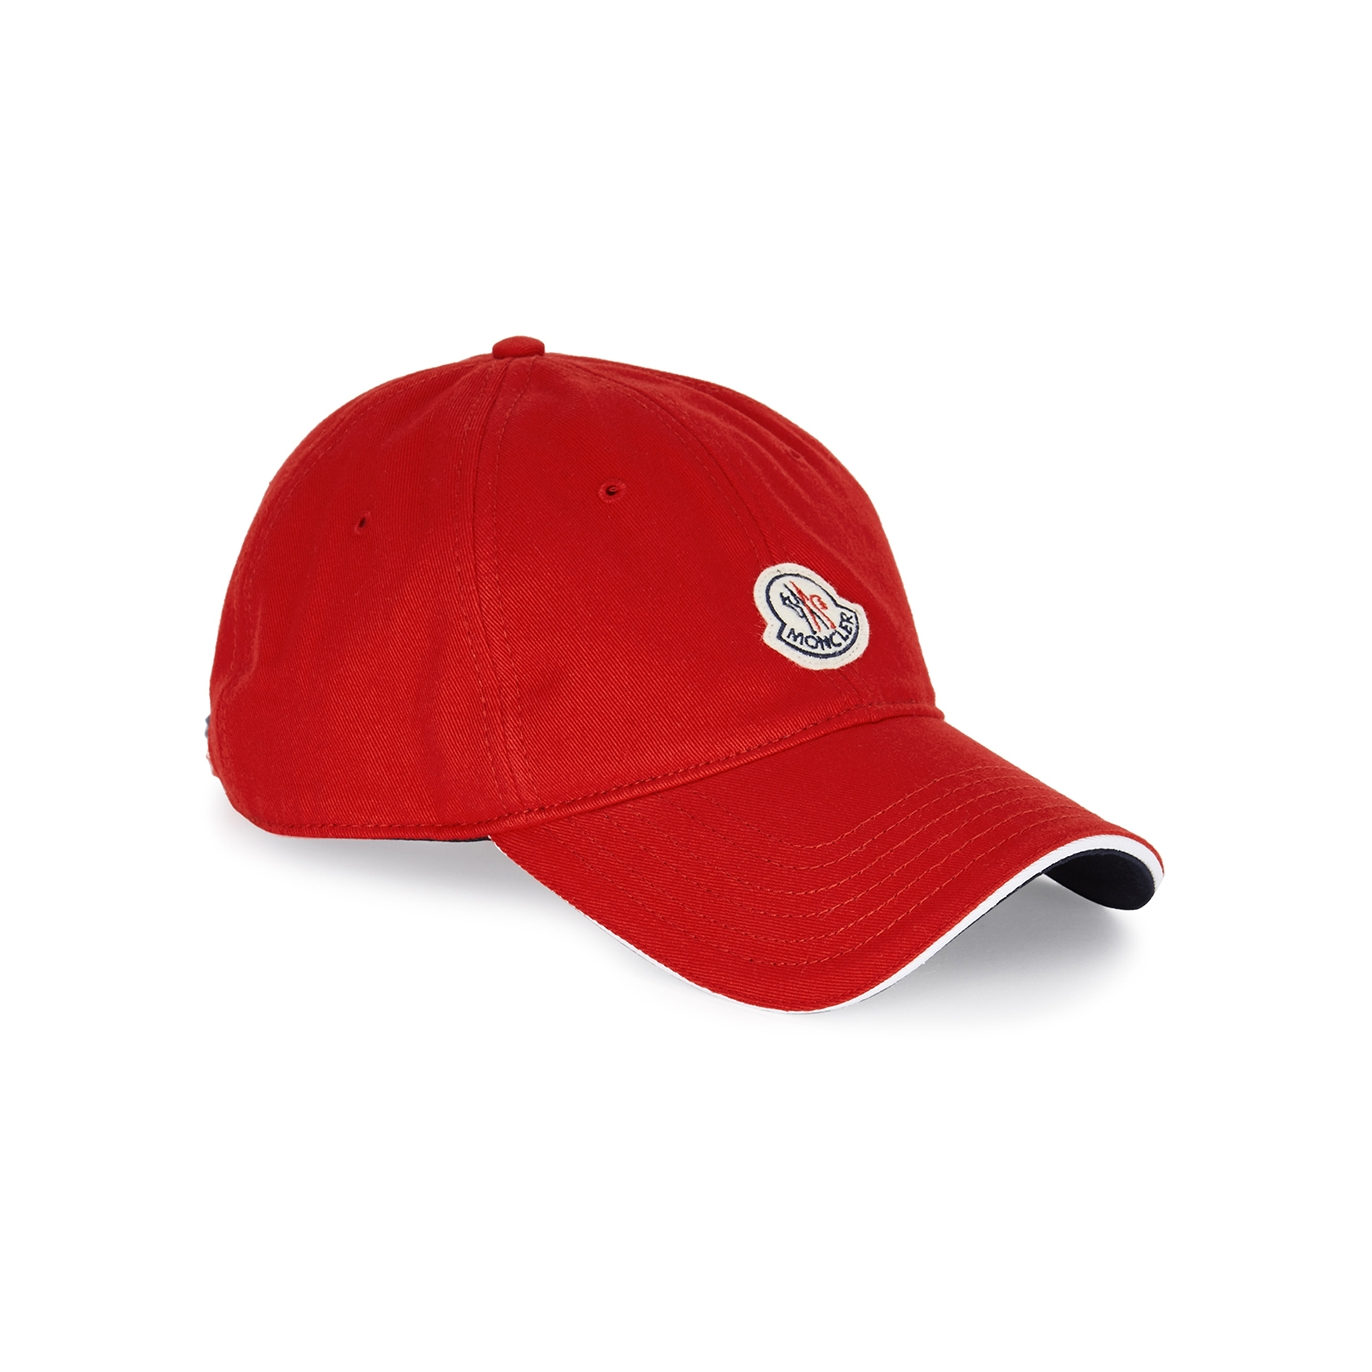 Moncler Red cotton cap - Harvey Nichols a5804feb917